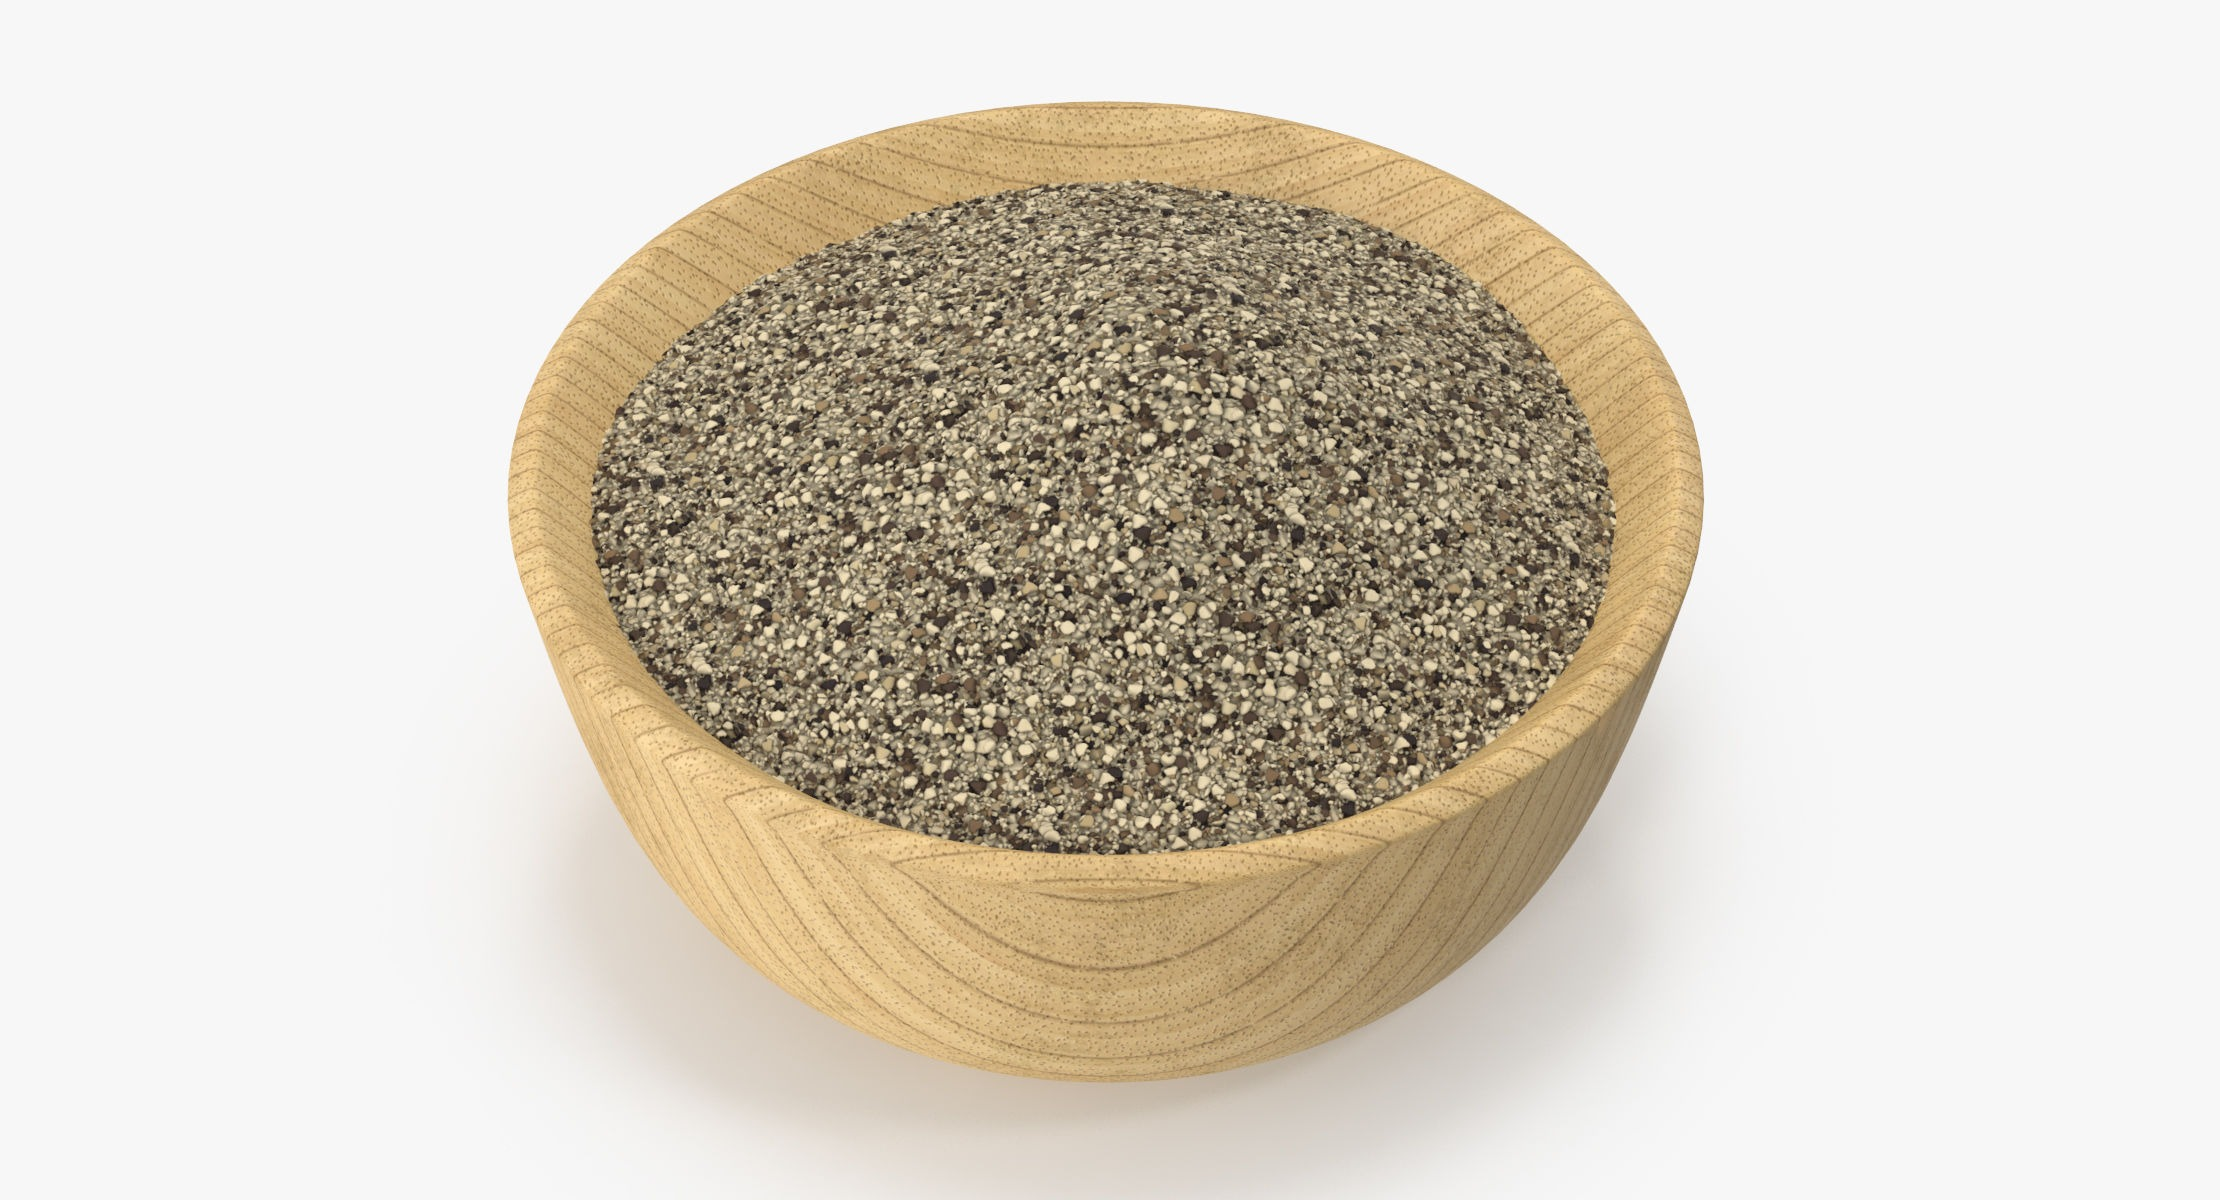 Bowl of Ground Black Pepper - reel 1